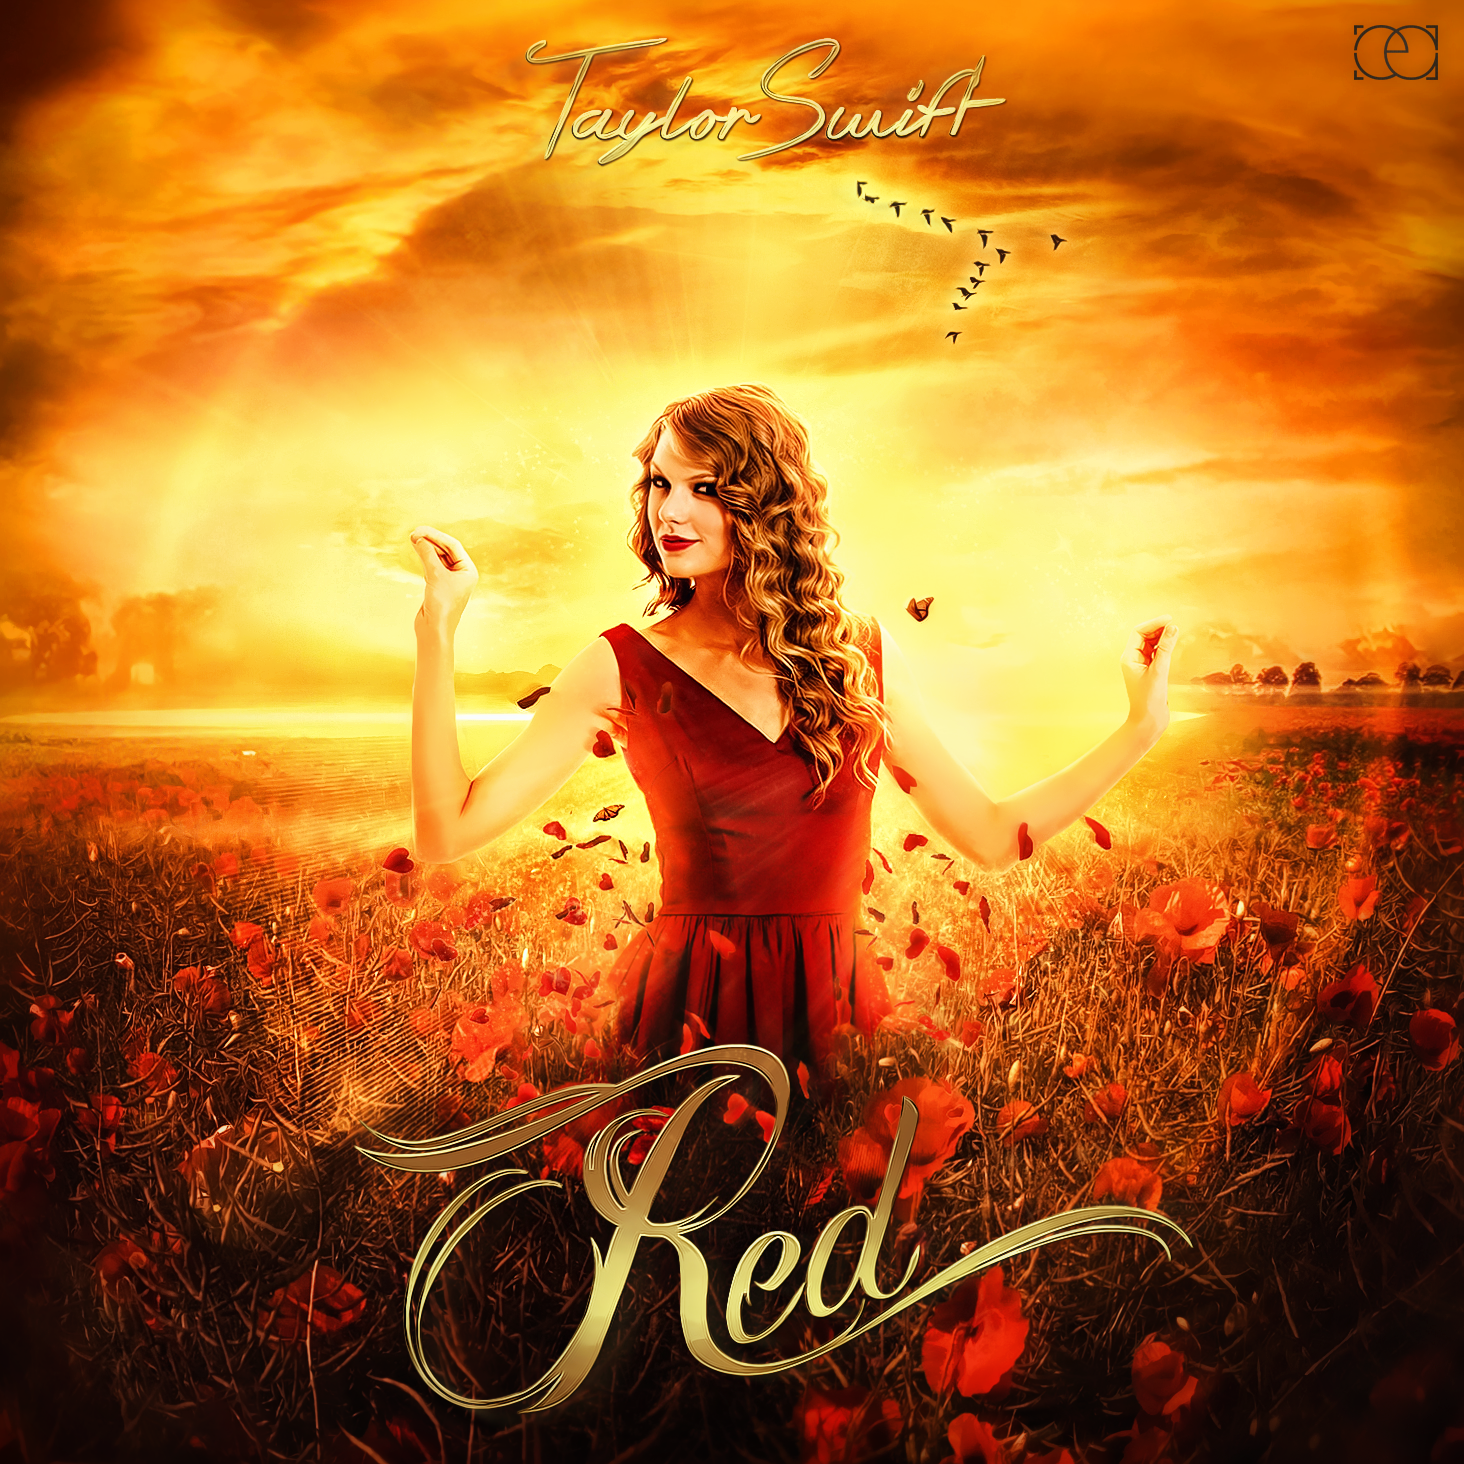 Taylor Swift - Red by ehsandesigns on DeviantArt